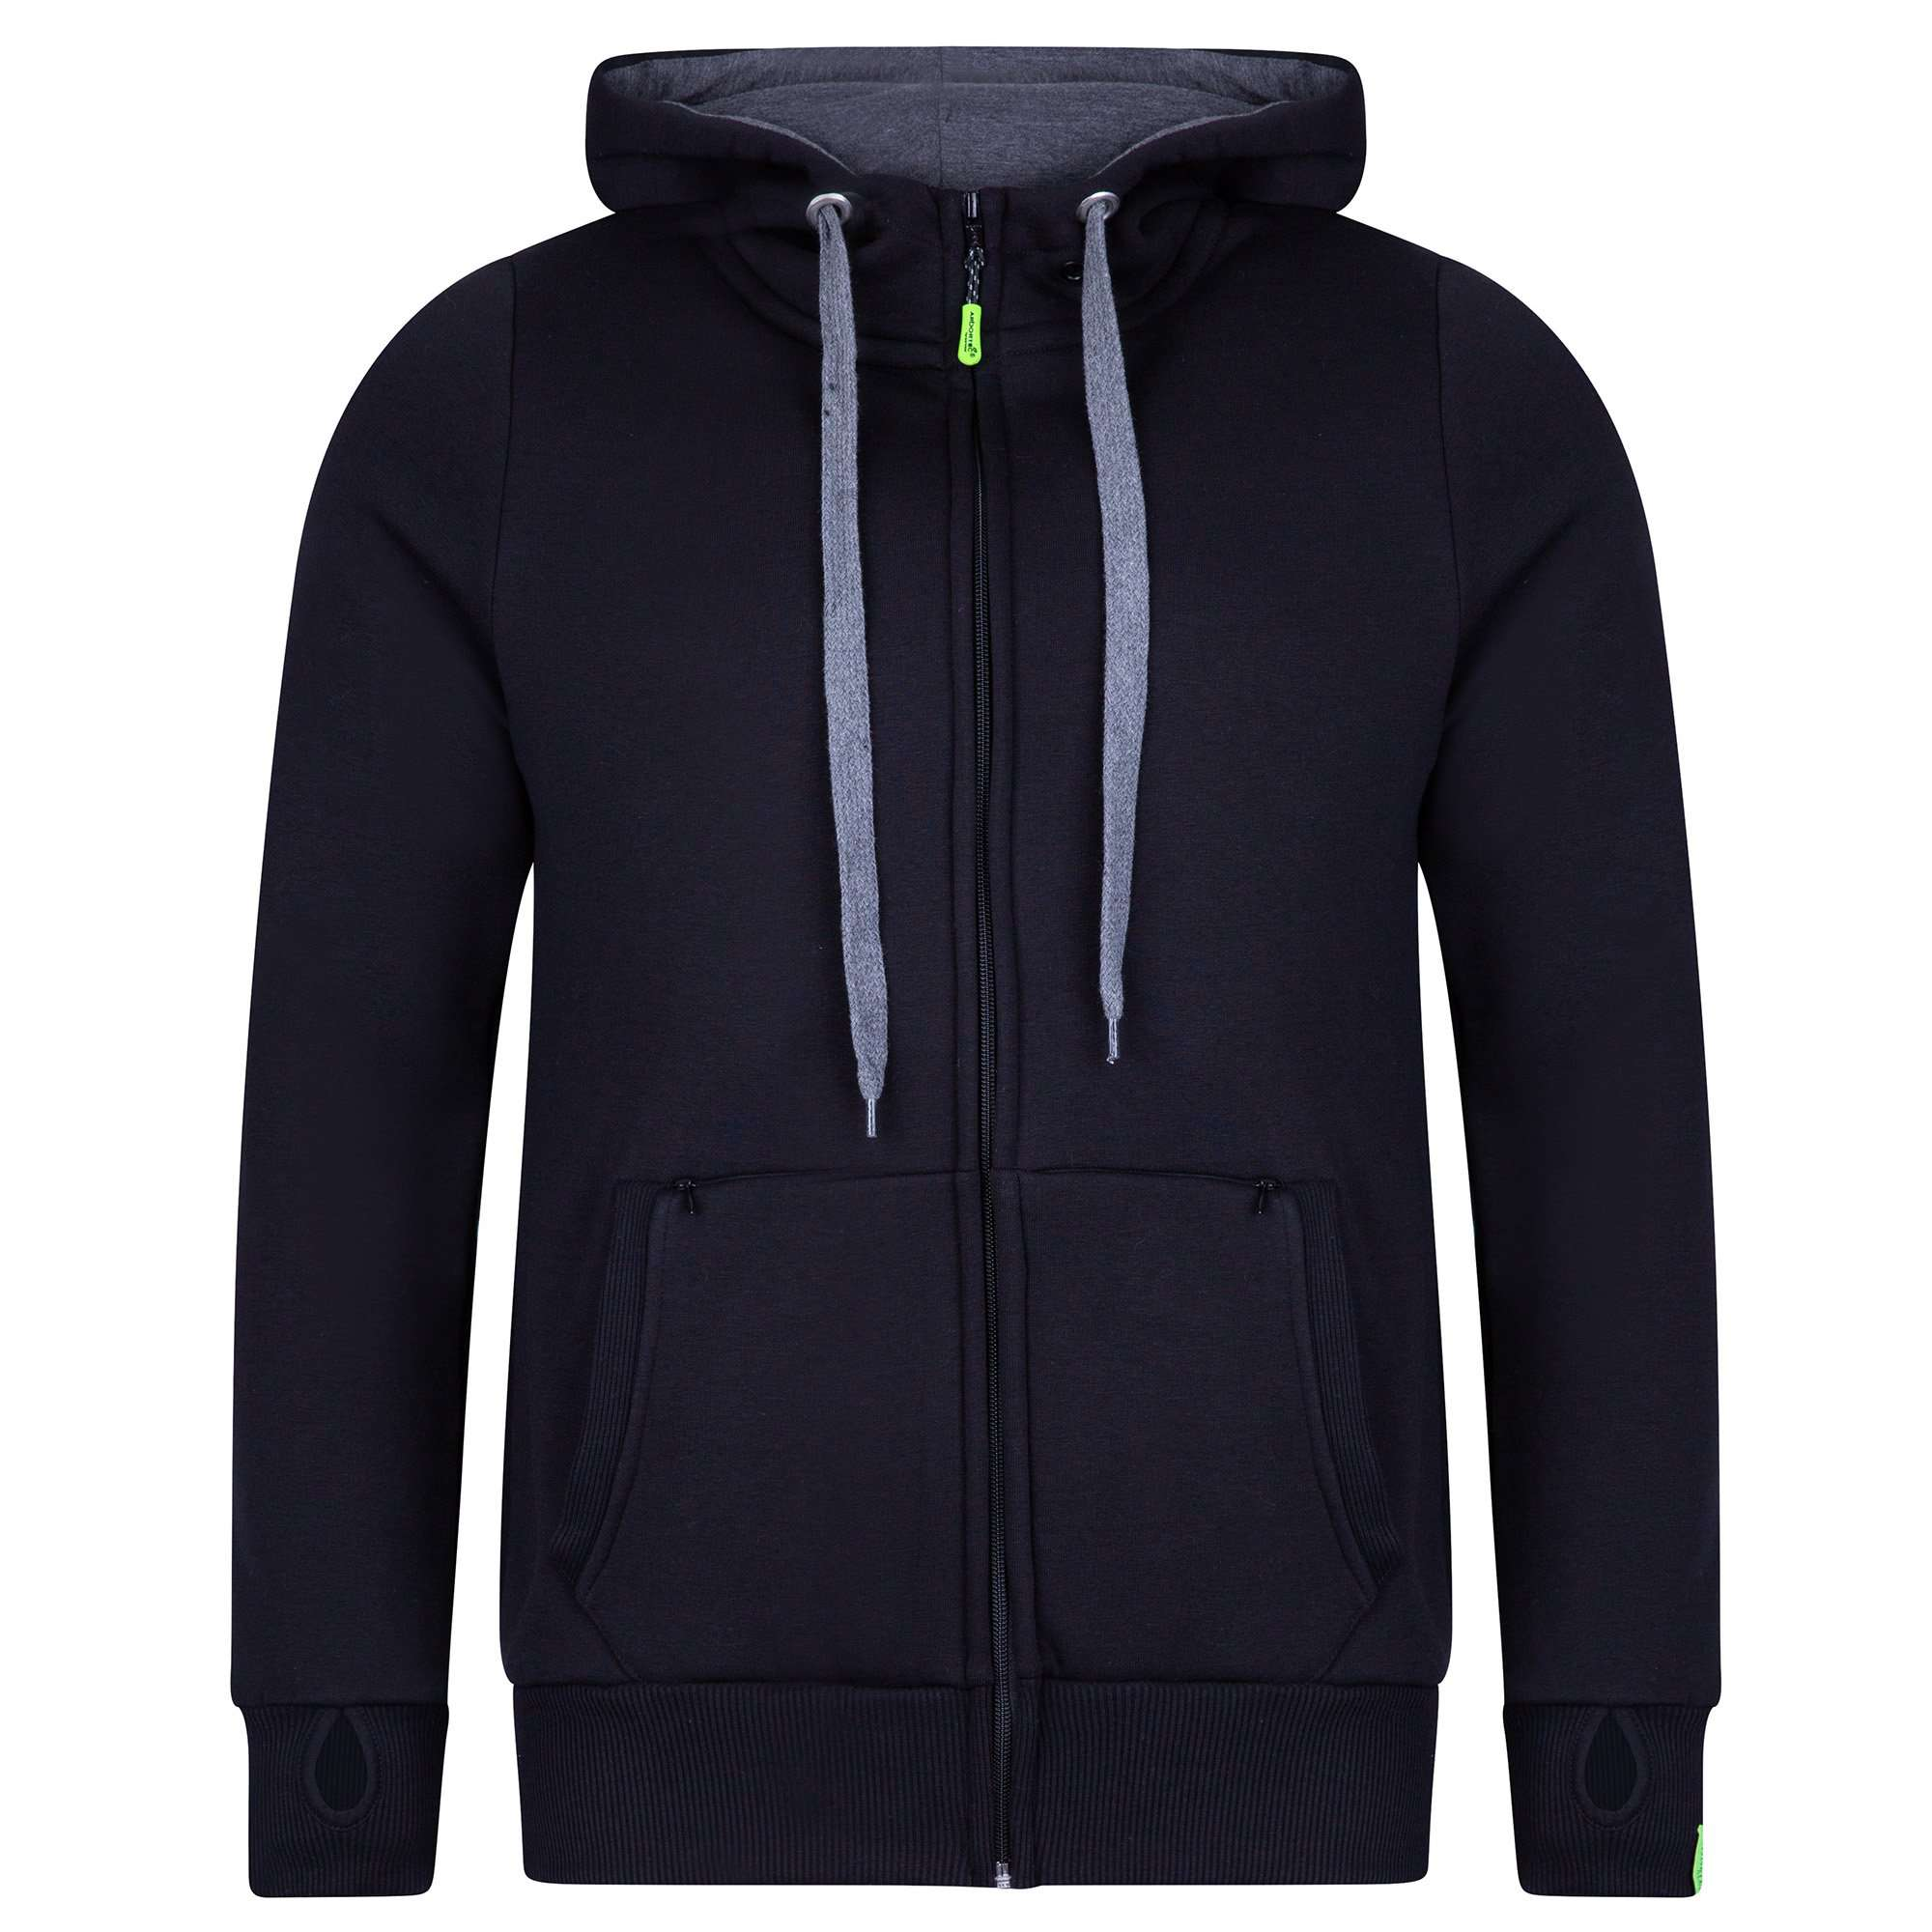 AT5020 Arbortec Zip Hoodie - Black - Arbortec Forestwear